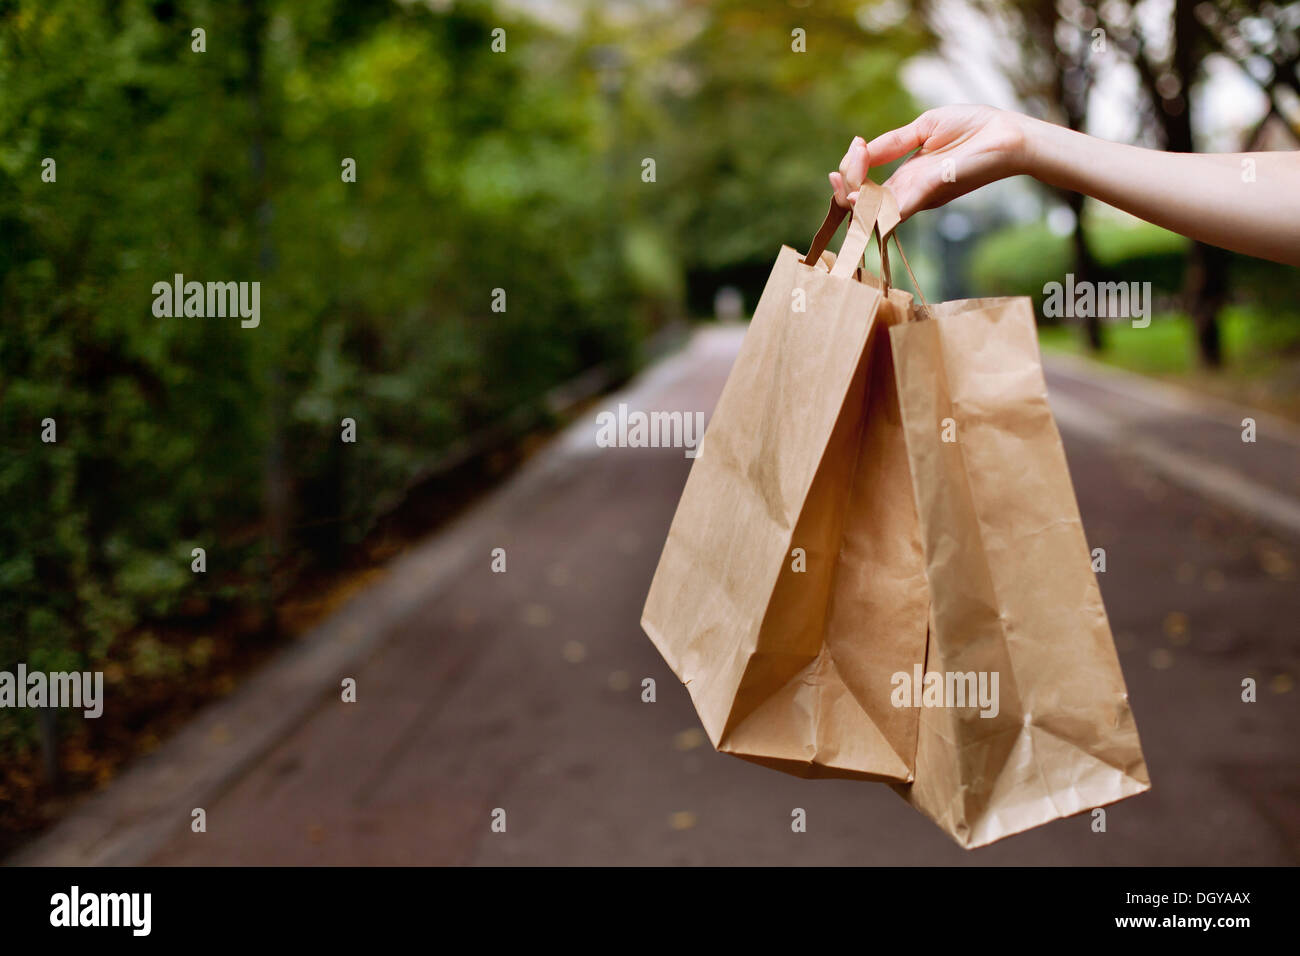 Shopping bags in the hand - Stock Image